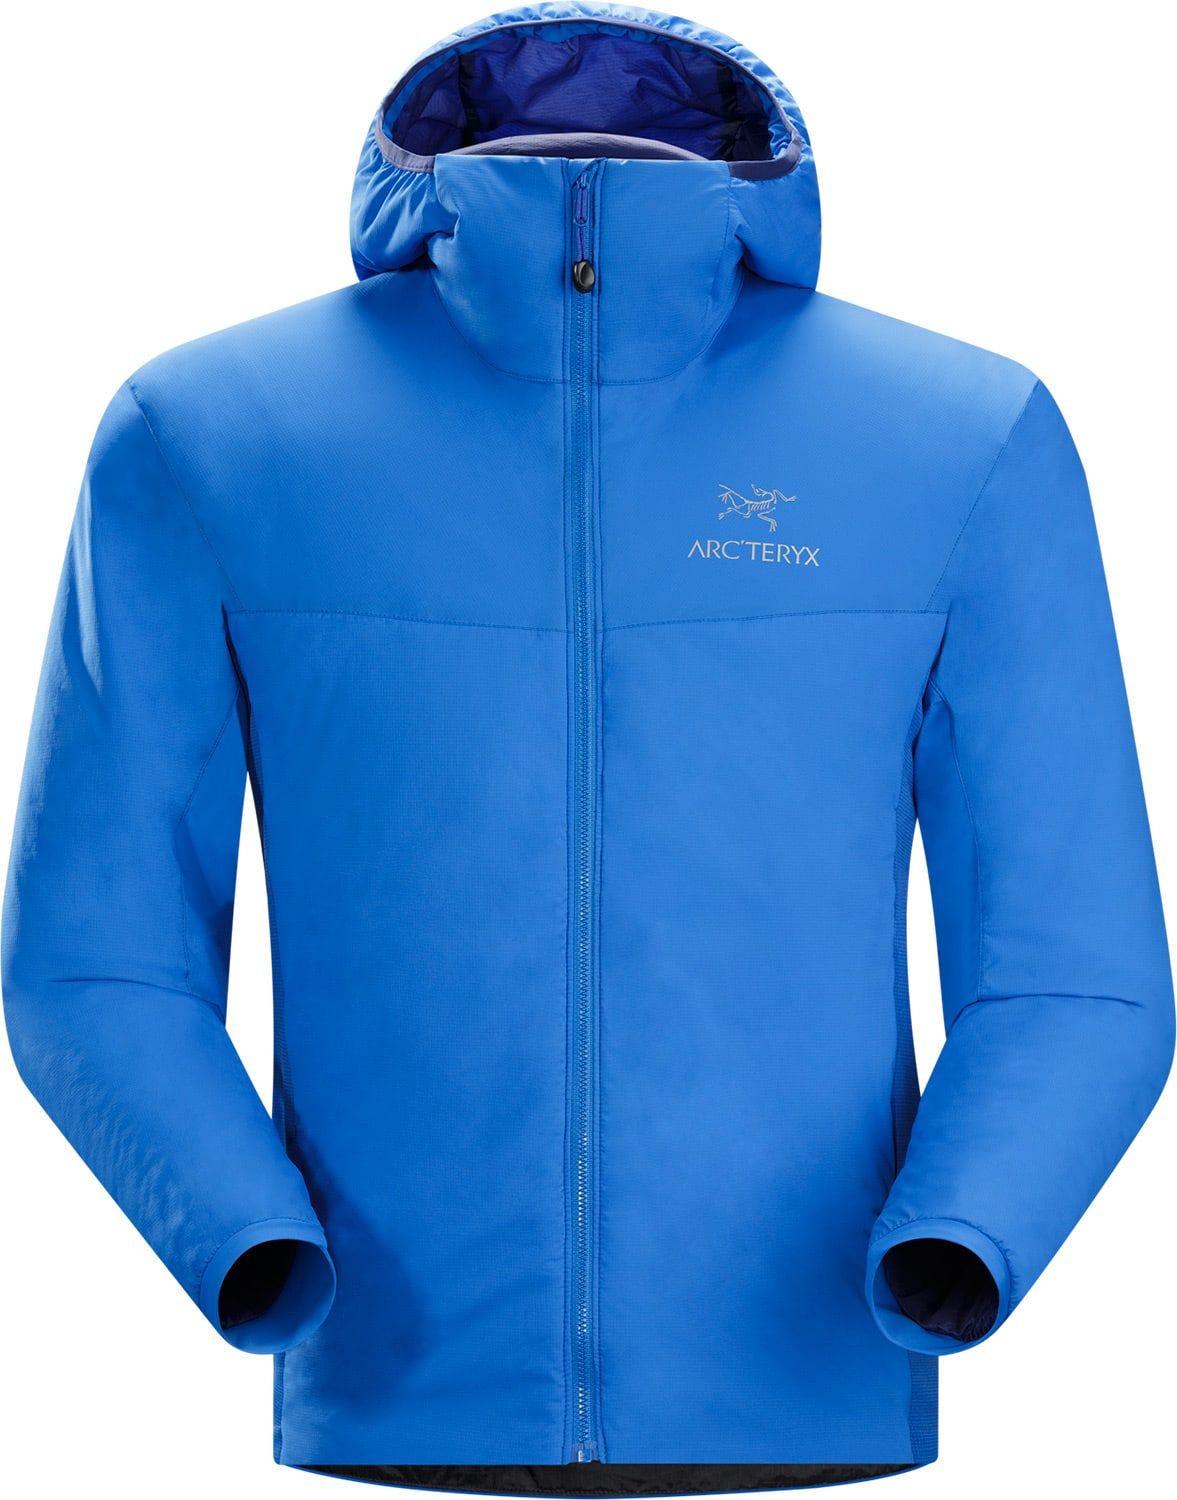 On Sale Arc Teryx Atom Lt Hoody Ski Jacket Up To 45 Off